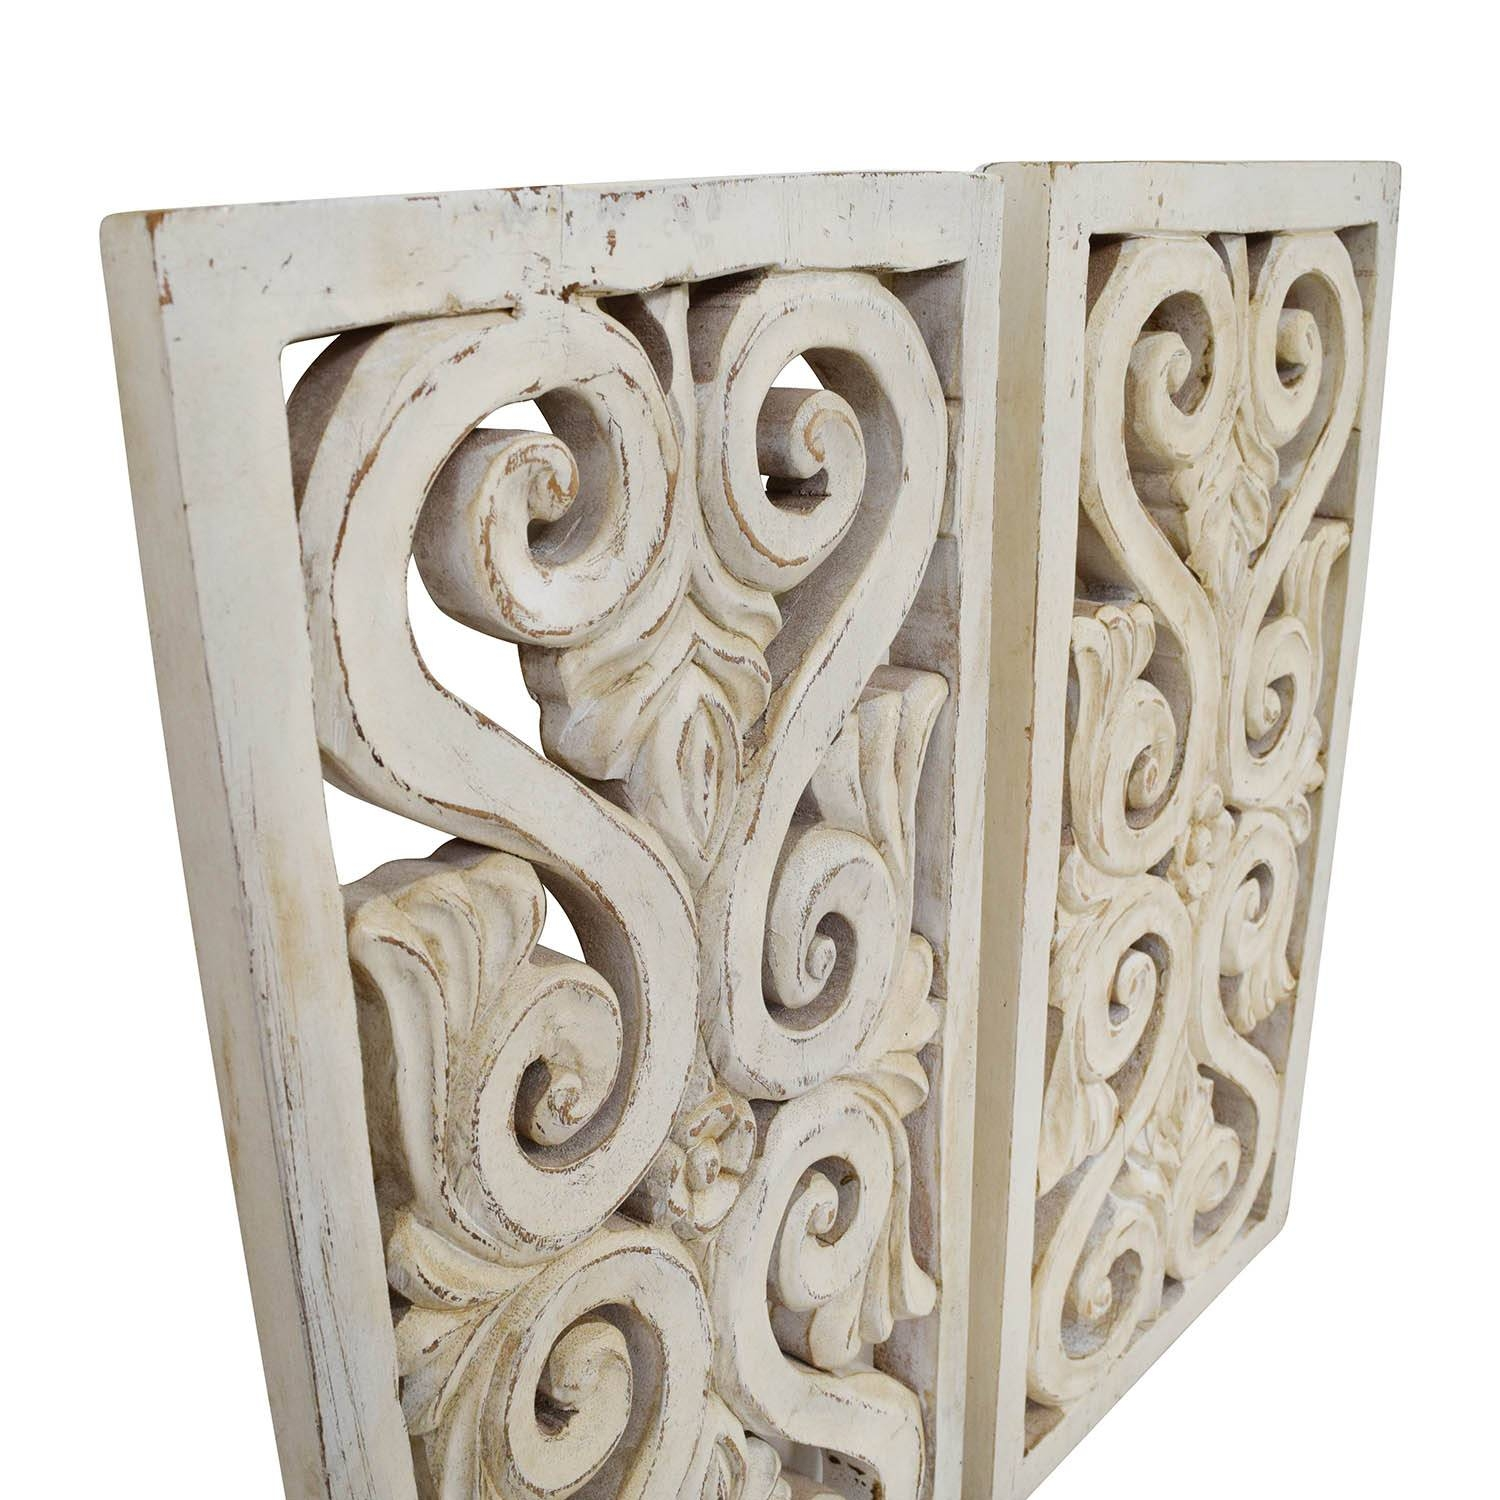 71% Off – Distressed White Wood Wall Sculpture / Decor With Regard To Best And Newest White Wooden Wall Art (Gallery 13 of 20)